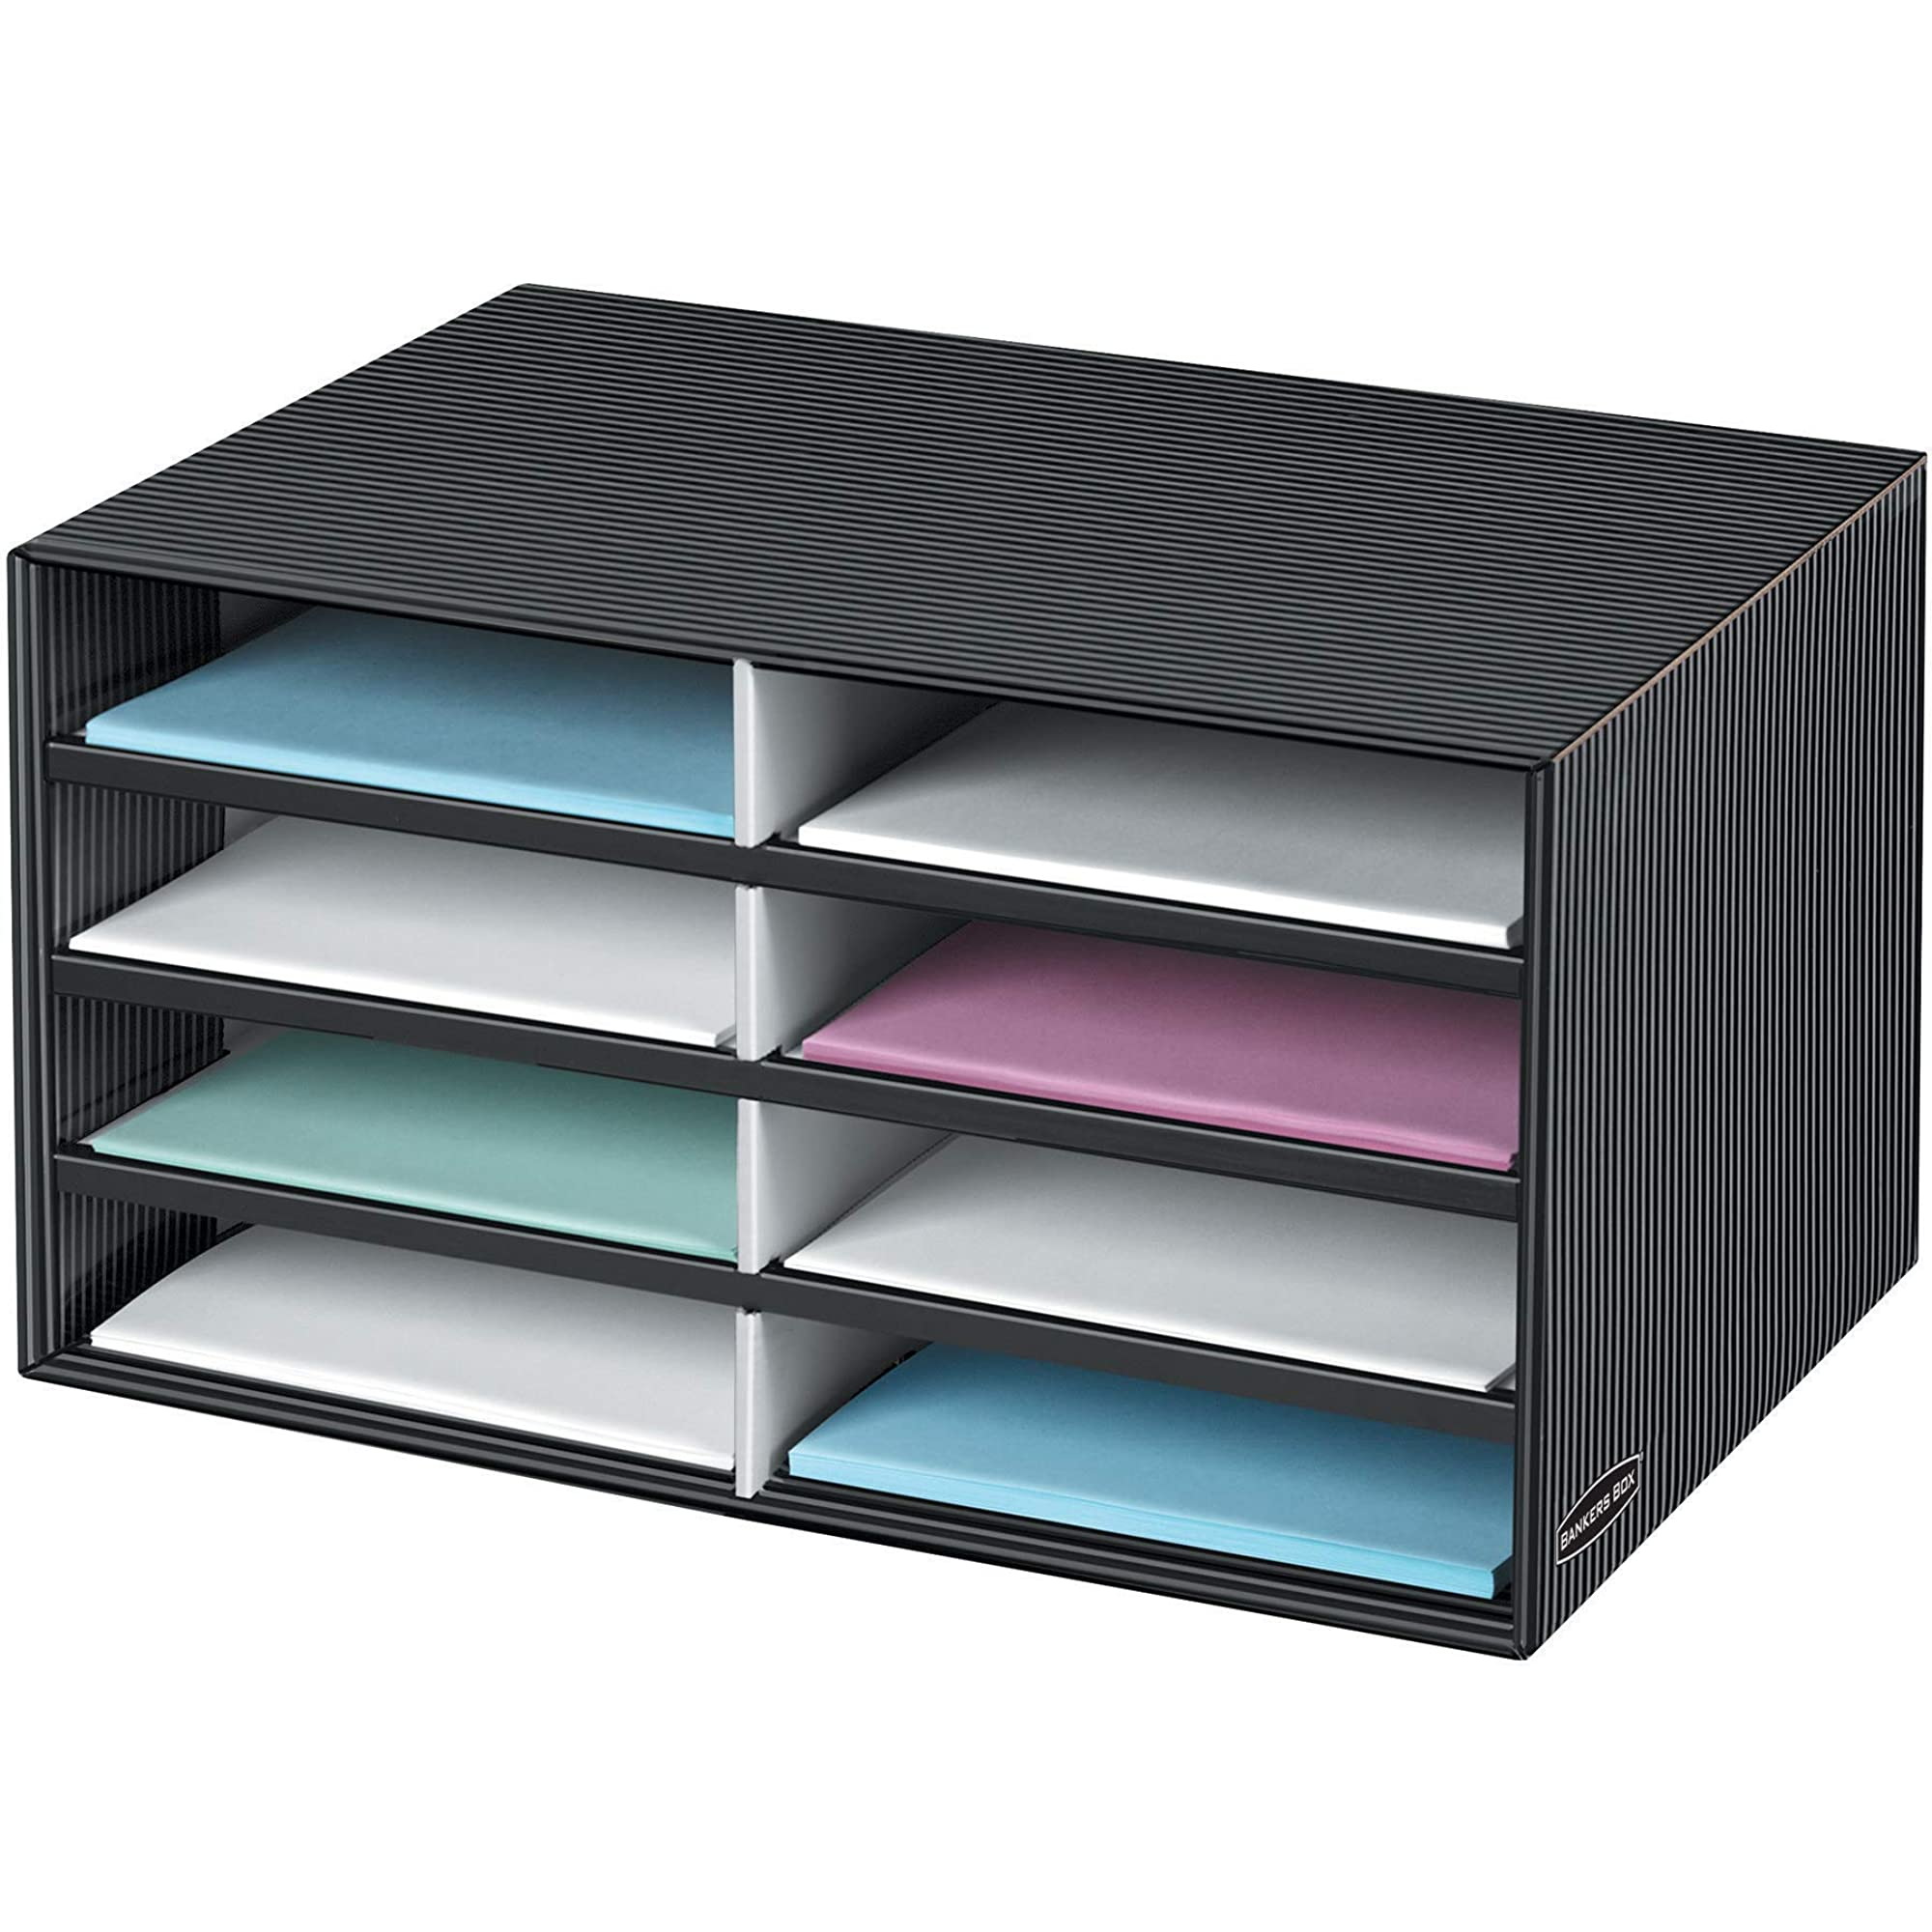 Eight Compartment Shelf Organizer